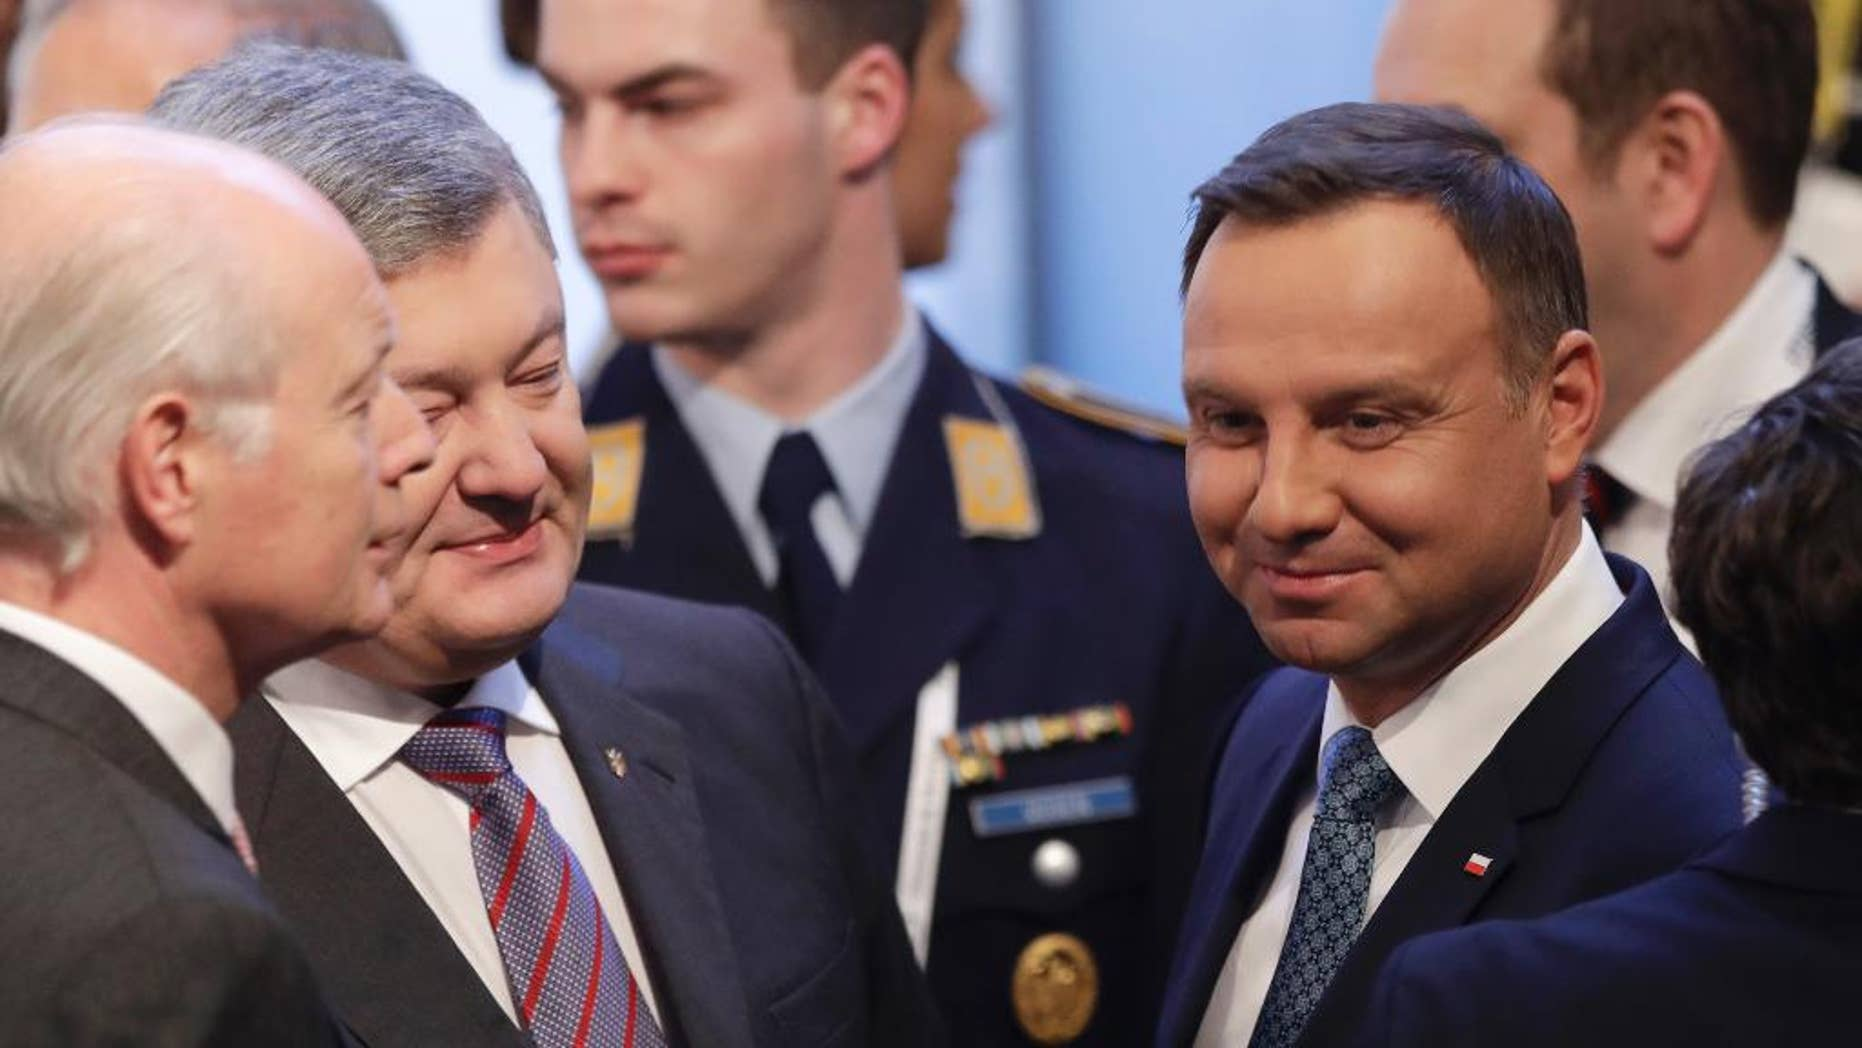 Polish President Andrzej Duda,right, and the president of Ukraine Petro Poroshenko chat during the Munich Security Conference in Munich, southern Germany, Friday, Feb. 17, 2017. The annual weekend gathering is known for providing an open and informal platform to meet in close quarters. (AP Photo/Matthias Schrader)